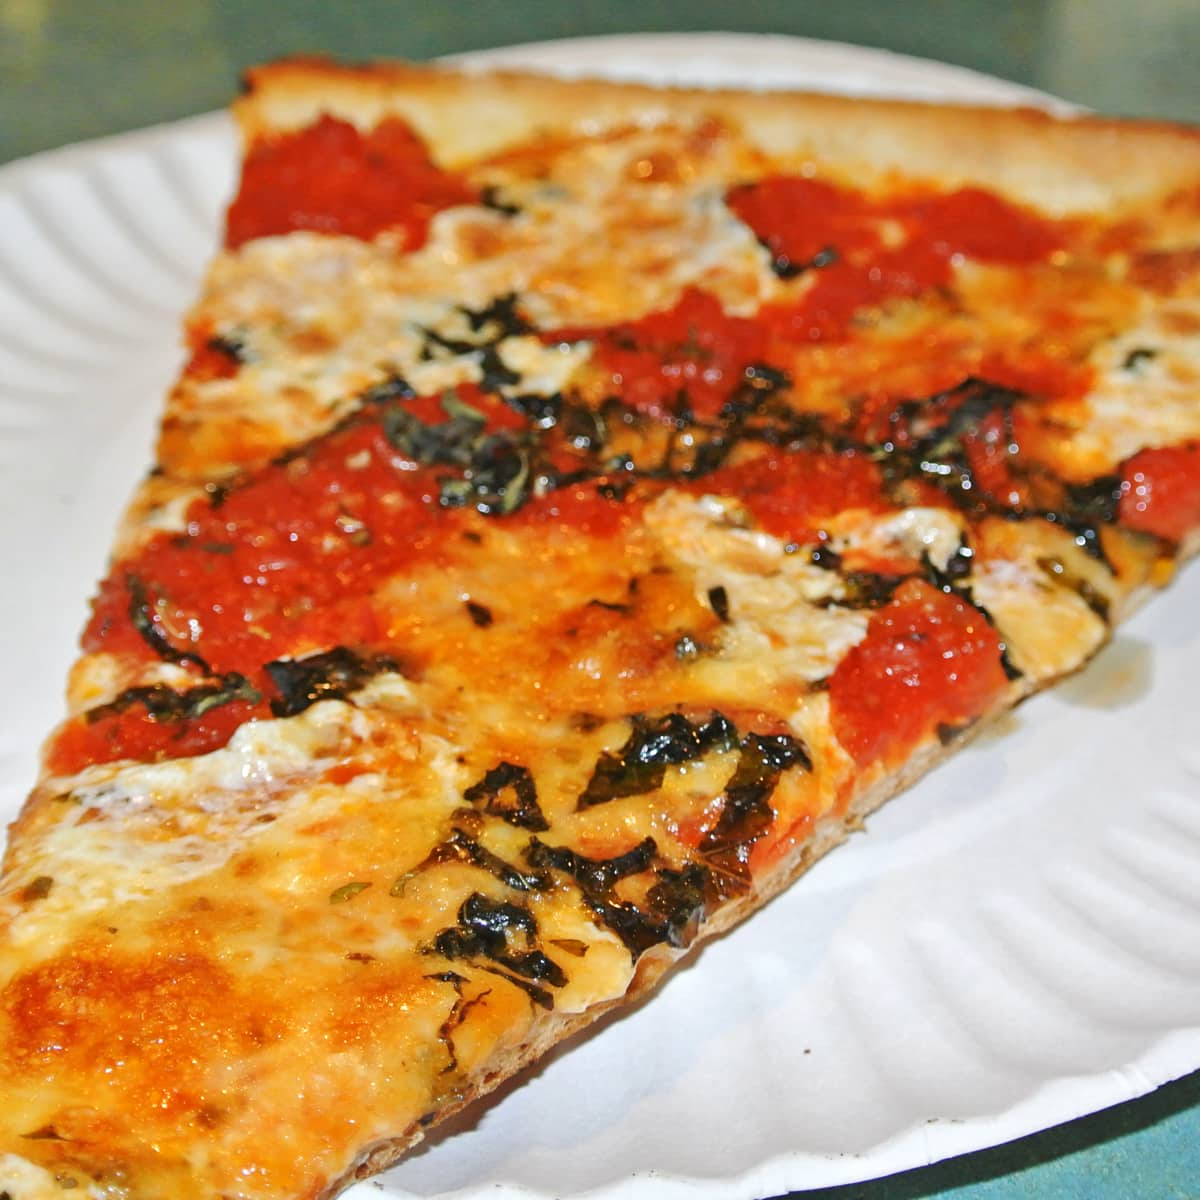 The Very Best Pizza Slice in New York is at Bleecker Street Pizza